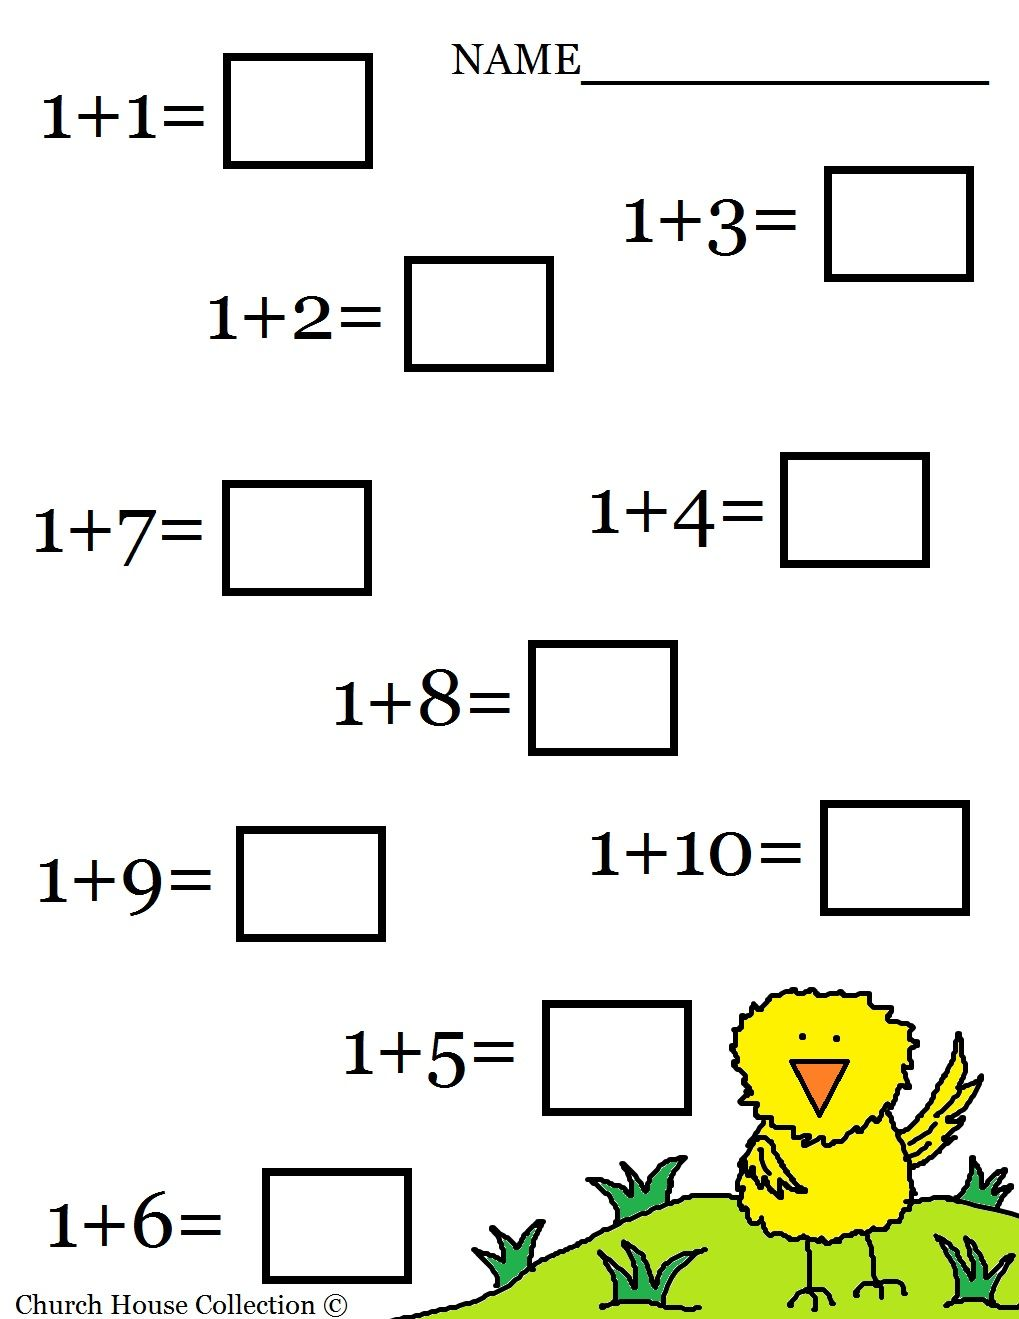 Aldiablosus  Pleasant  Images About Worksheets  Math On Pinterest  Math Sheets  With Gorgeous  Images About Worksheets  Math On Pinterest  Math Sheets Math Worksheets For Kindergarten And Simple Addition With Easy On The Eye Free Printable Sentence Structure Worksheets Also Phonics Ue Worksheets In Addition Alkene Worksheet And Food Chains Ks Worksheet As Well As Grammar Pronouns Worksheets Additionally Grammar Worksheets Year  From Pinterestcom With Aldiablosus  Gorgeous  Images About Worksheets  Math On Pinterest  Math Sheets  With Easy On The Eye  Images About Worksheets  Math On Pinterest  Math Sheets Math Worksheets For Kindergarten And Simple Addition And Pleasant Free Printable Sentence Structure Worksheets Also Phonics Ue Worksheets In Addition Alkene Worksheet From Pinterestcom